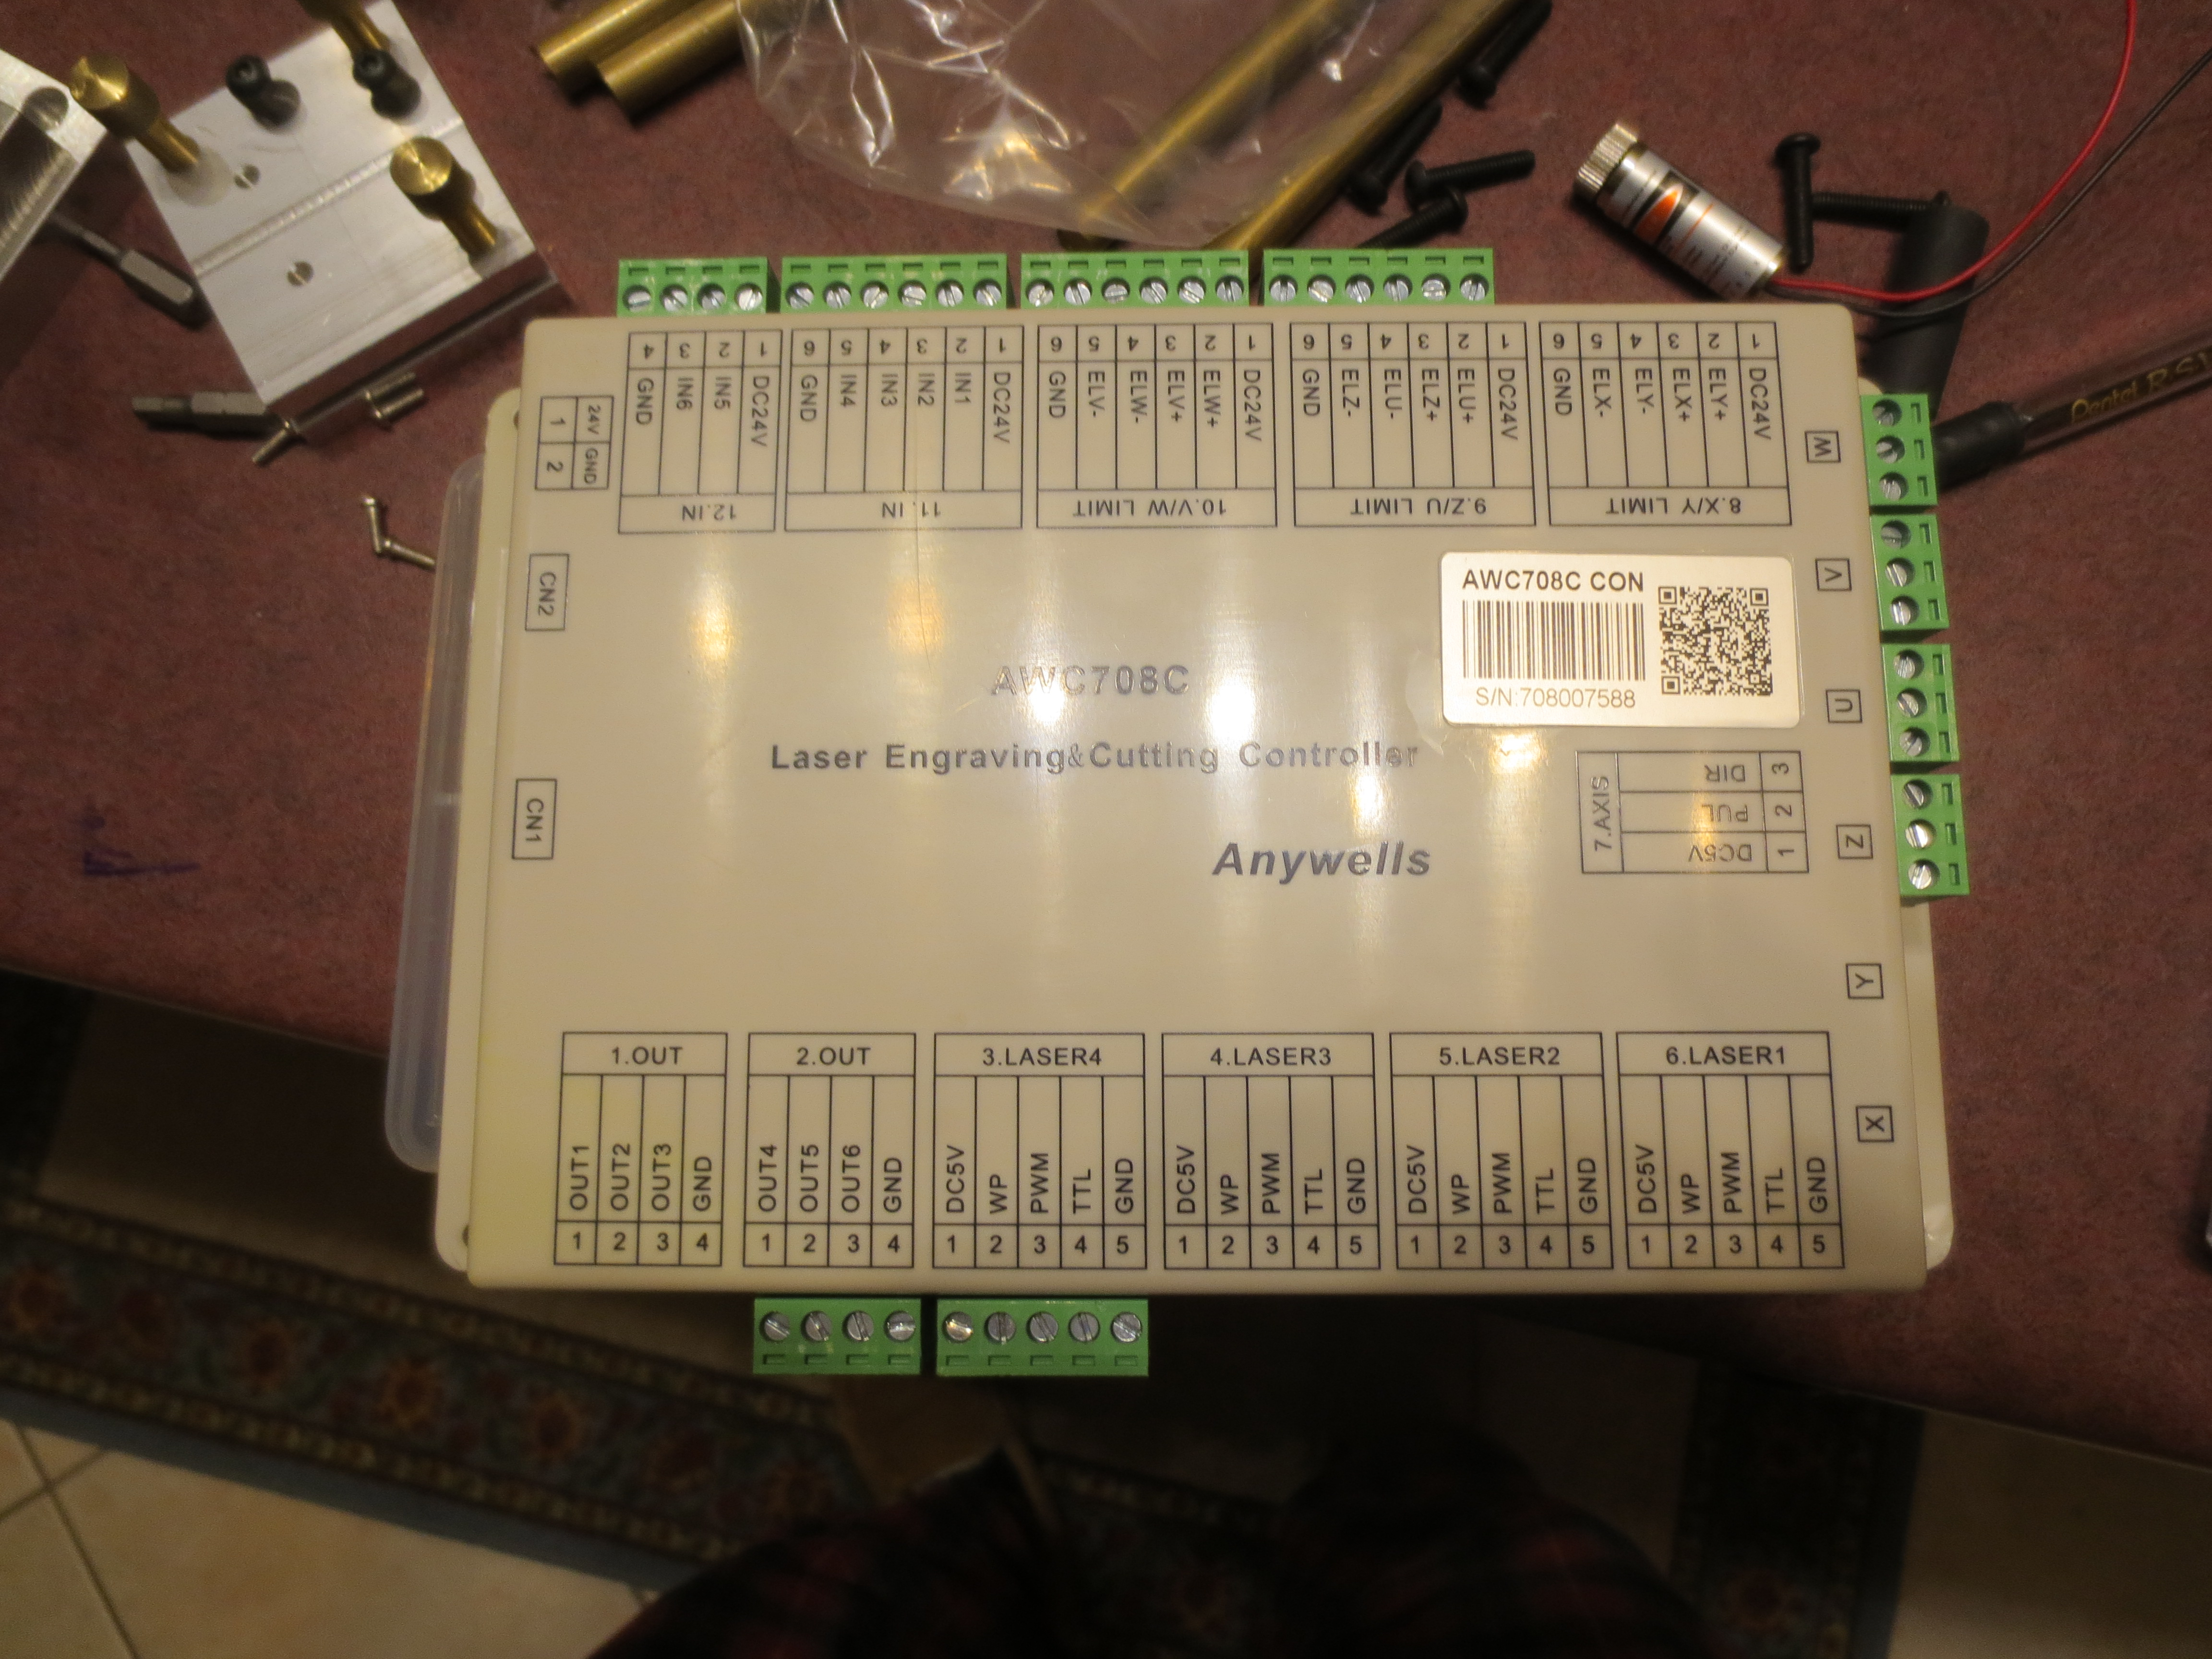 Co2 Laser Controllers Electronics Similar Results 40w Power Supply Circuits Awc708c Plus Description My Latest